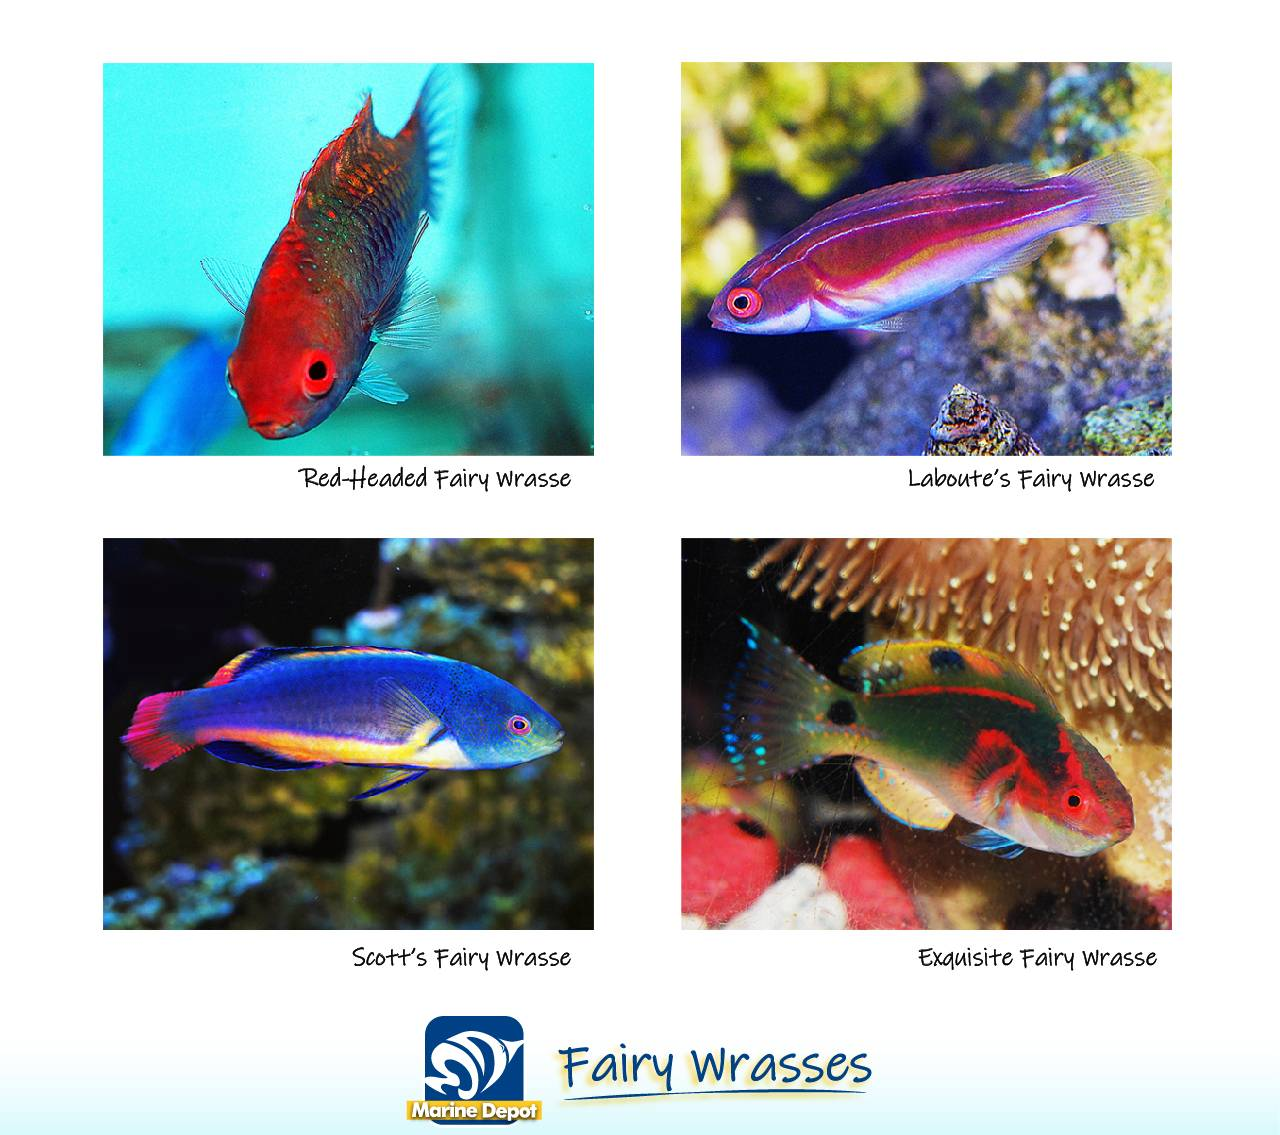 Infographic of Fairy wrasse genus and species common in the trade